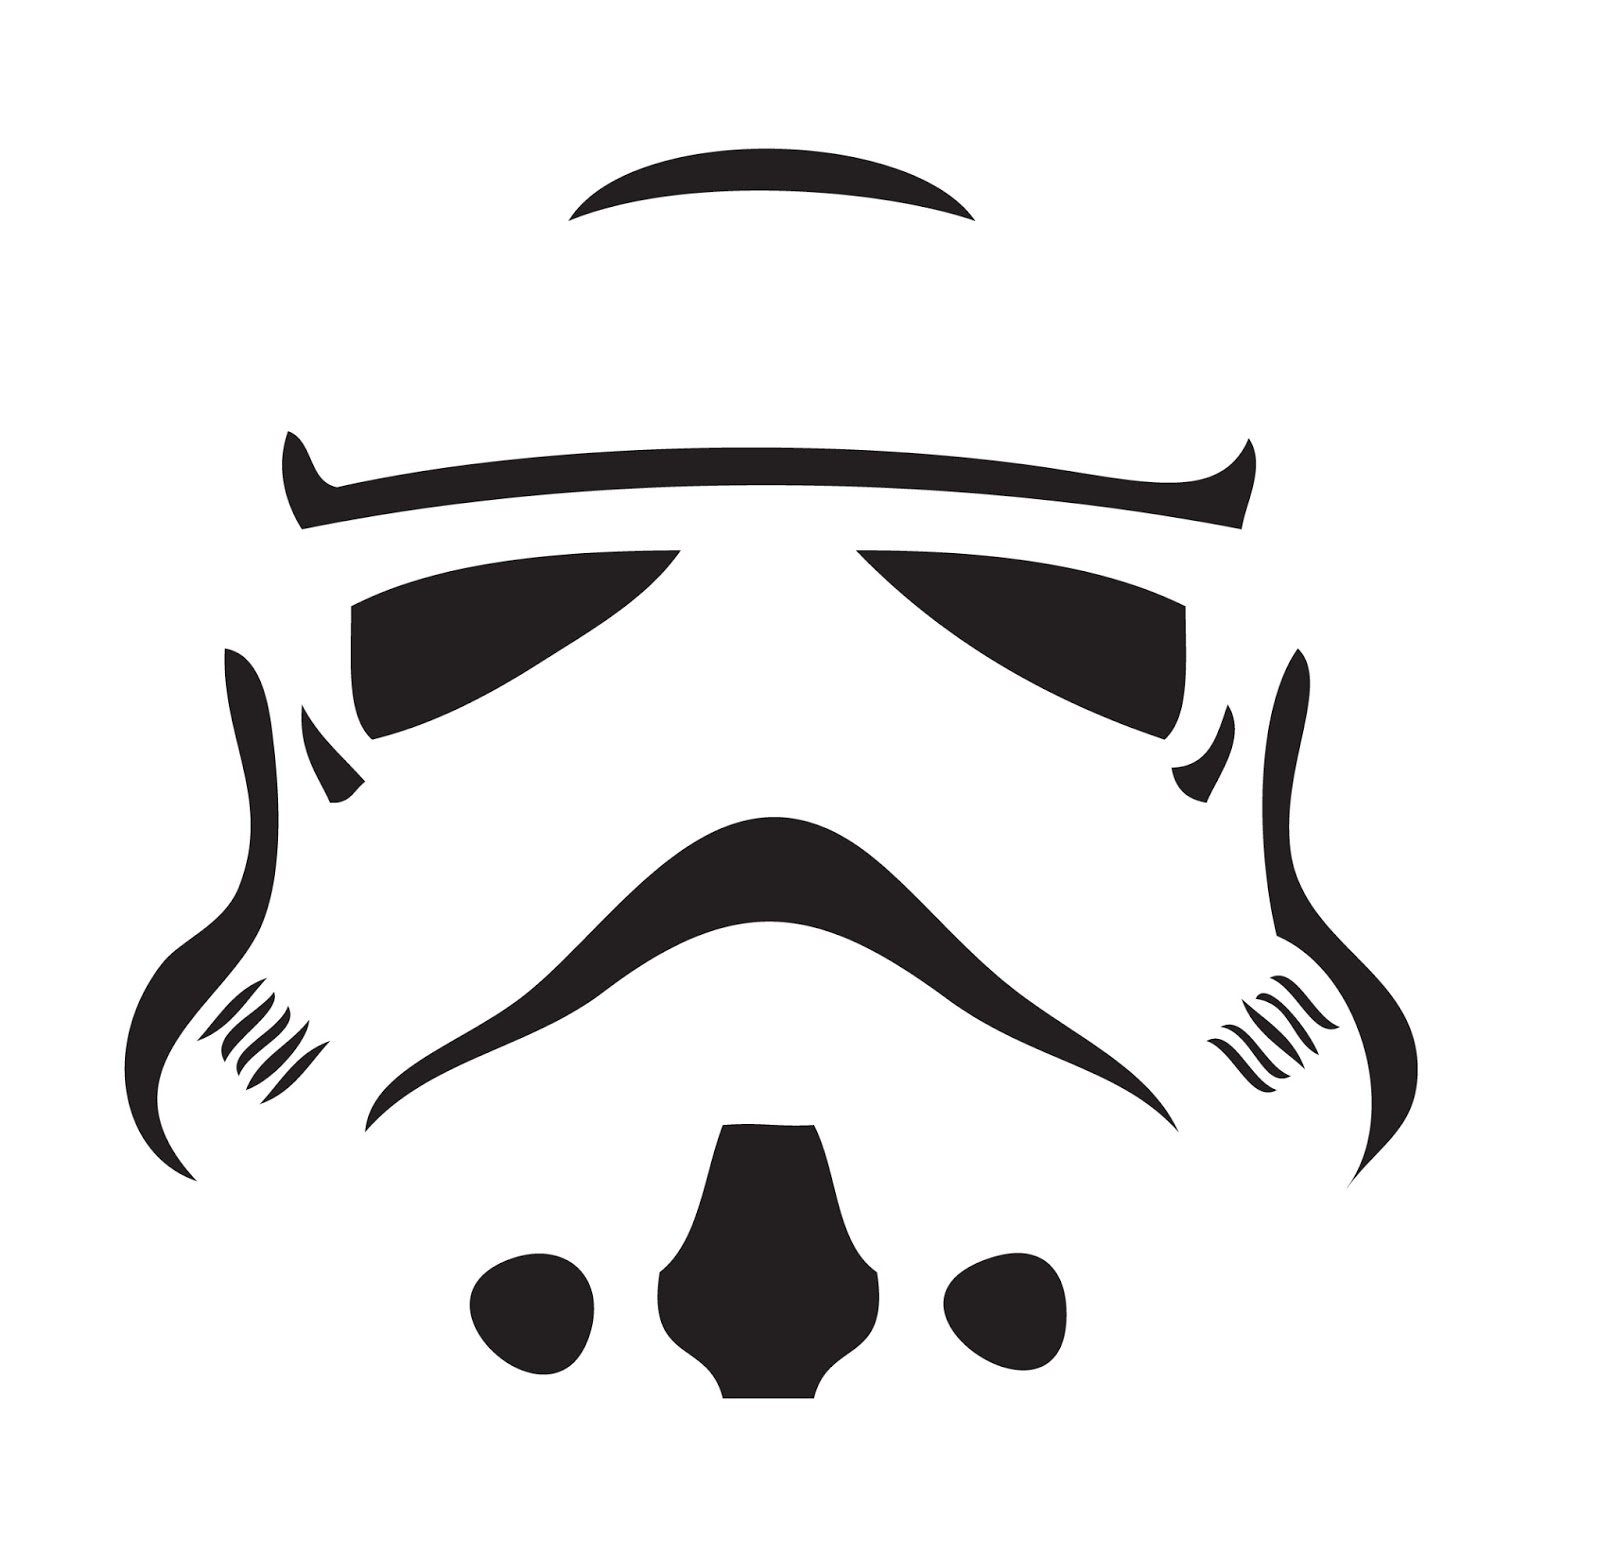 Star wars pumpkin stencils carving pattern outline free